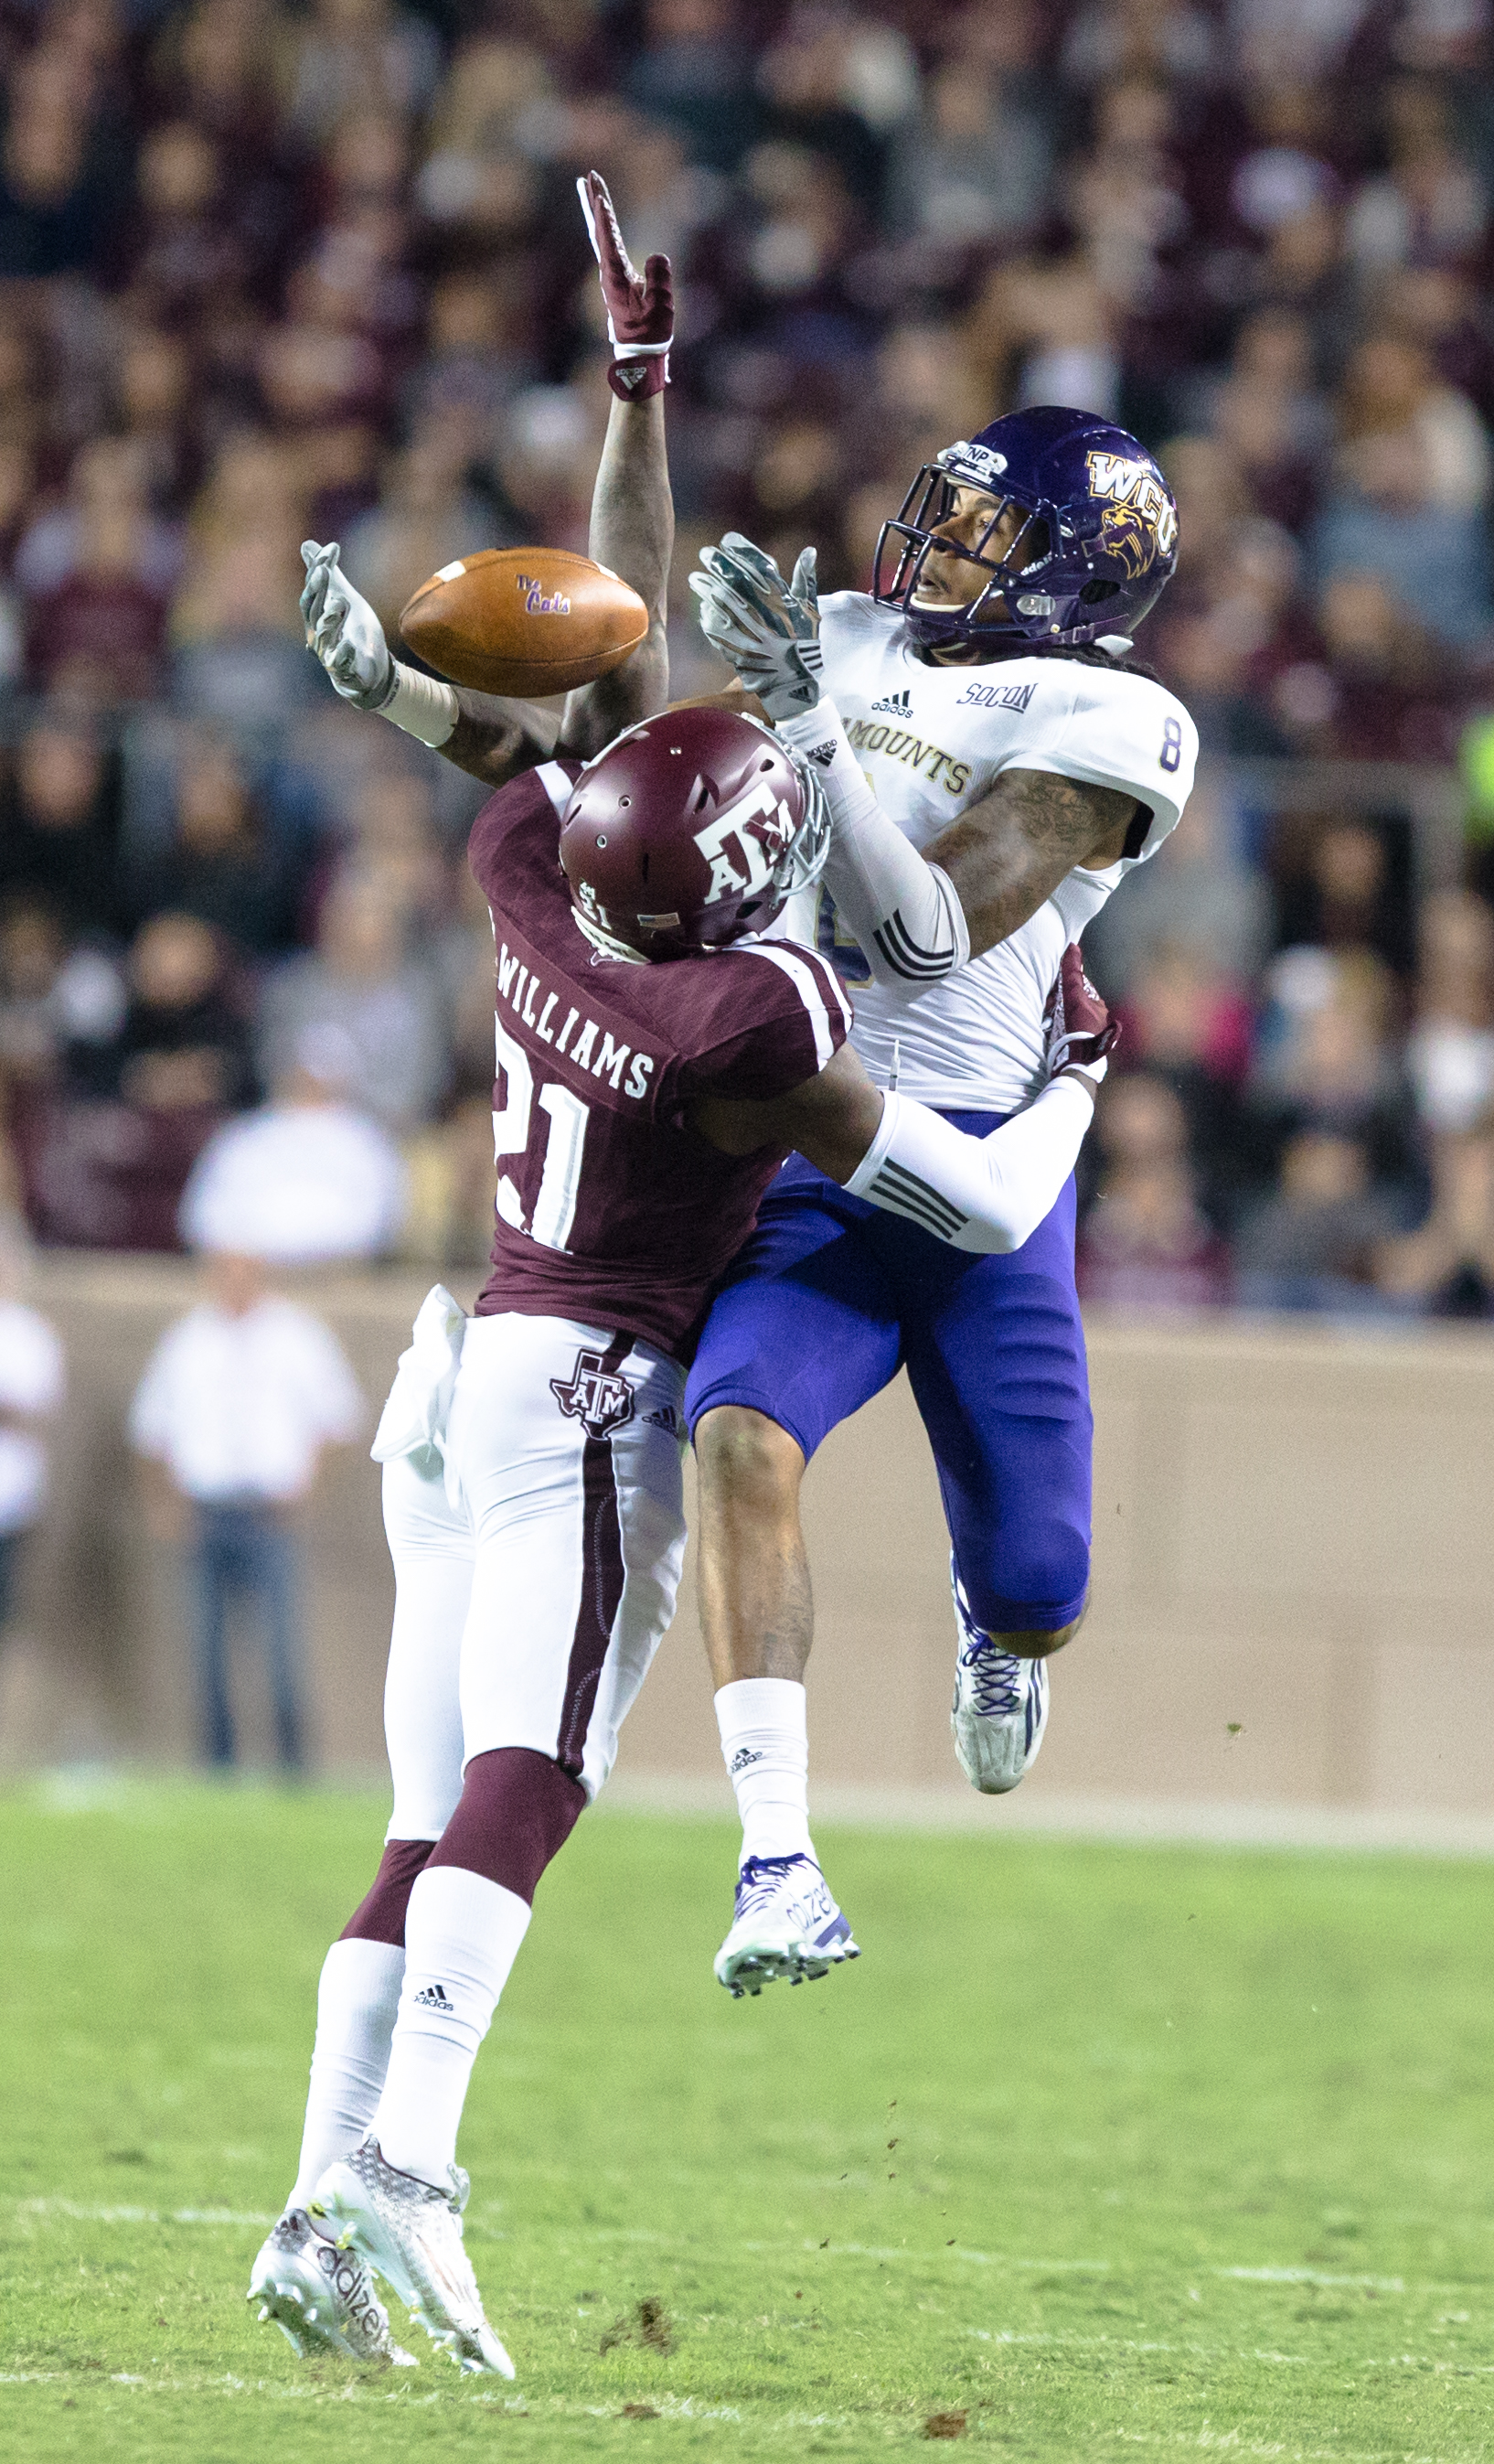 Western Carolina's Spearman Robinson (8) leaps over Texas A&M's Brandon Williams (21) to make the catch during the first half of an NCAA college football game Saturday, Nov. 14, 2015, in College Station, Texas. (AP Photo/Juan DeLeon)